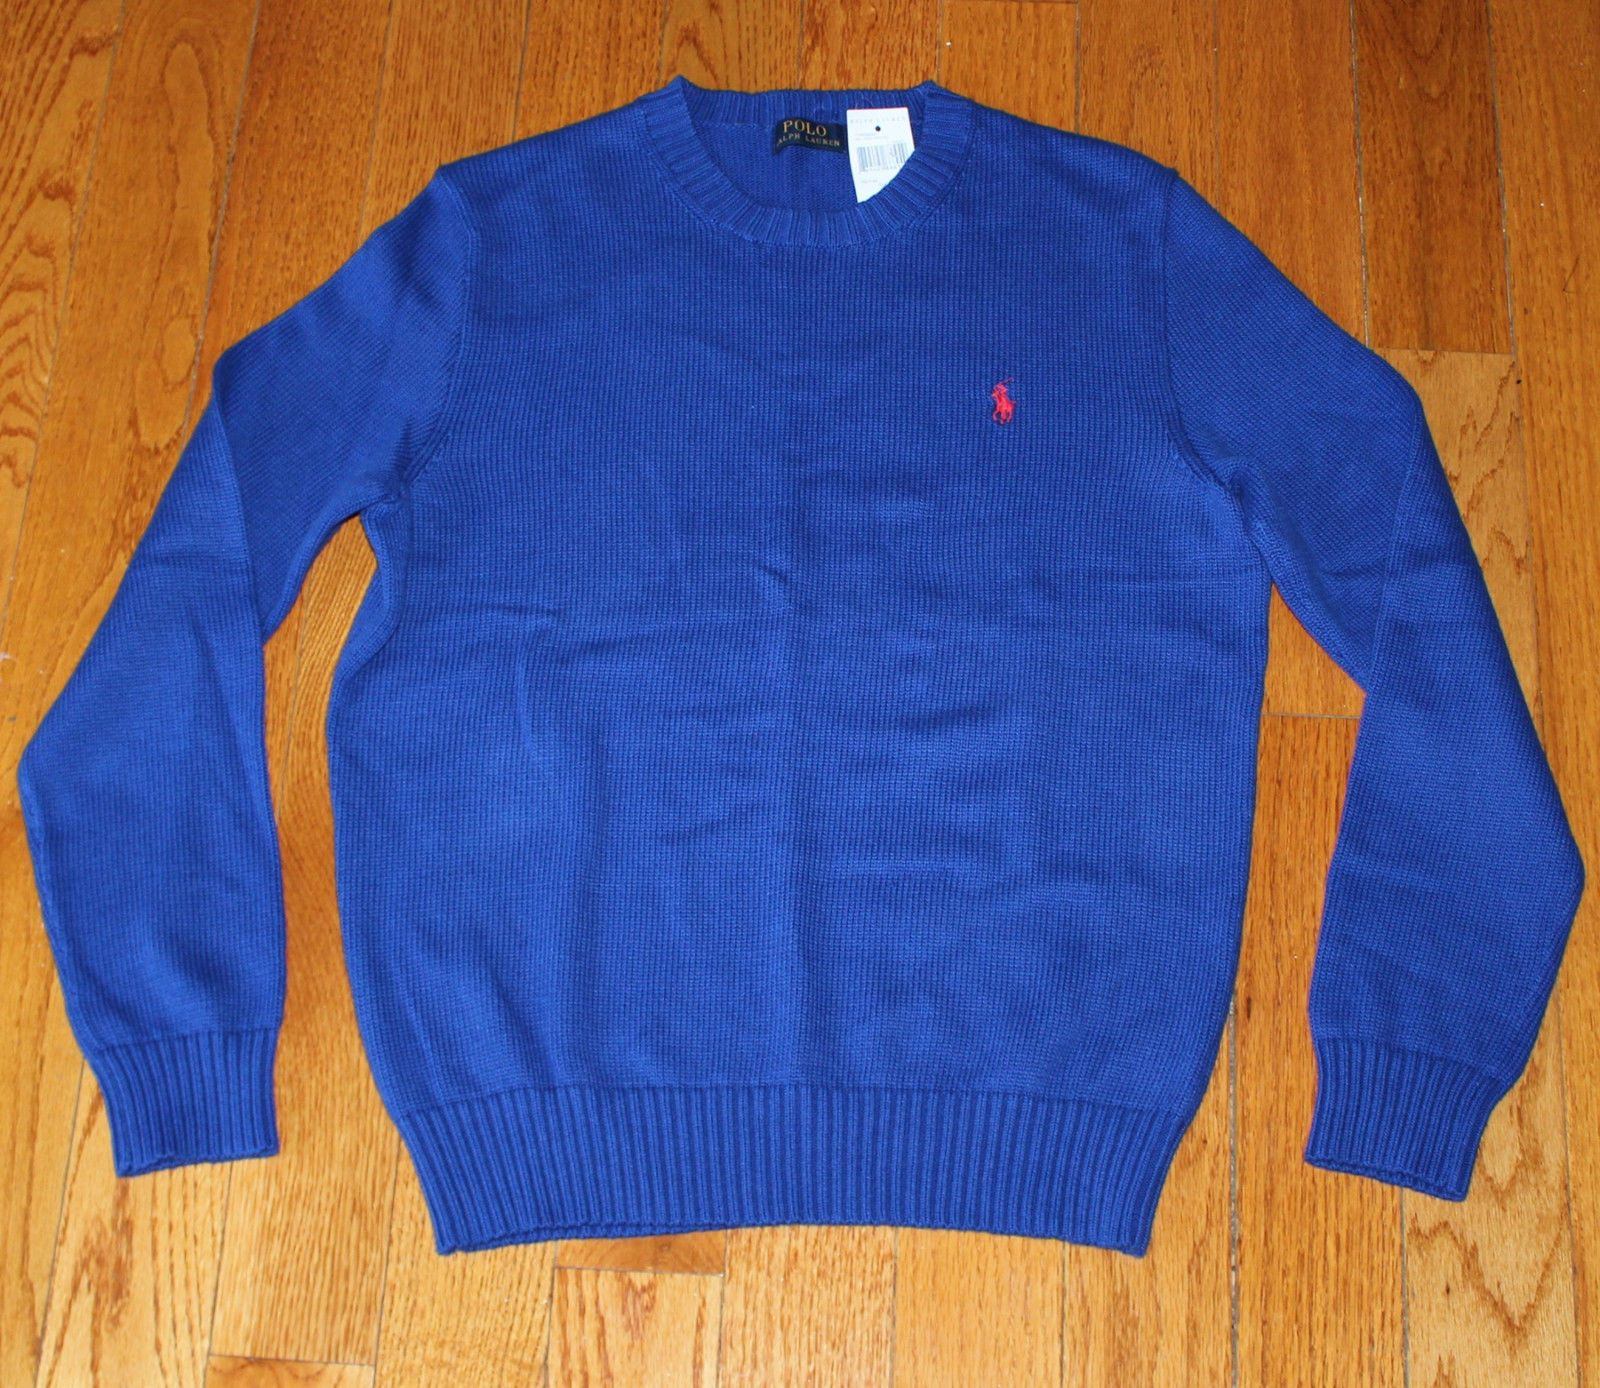 98 BRAND NEW Men s Small S POLO Ralph Lauren Knit Crewneck Sweater Blue  Cotton 76417ede213e